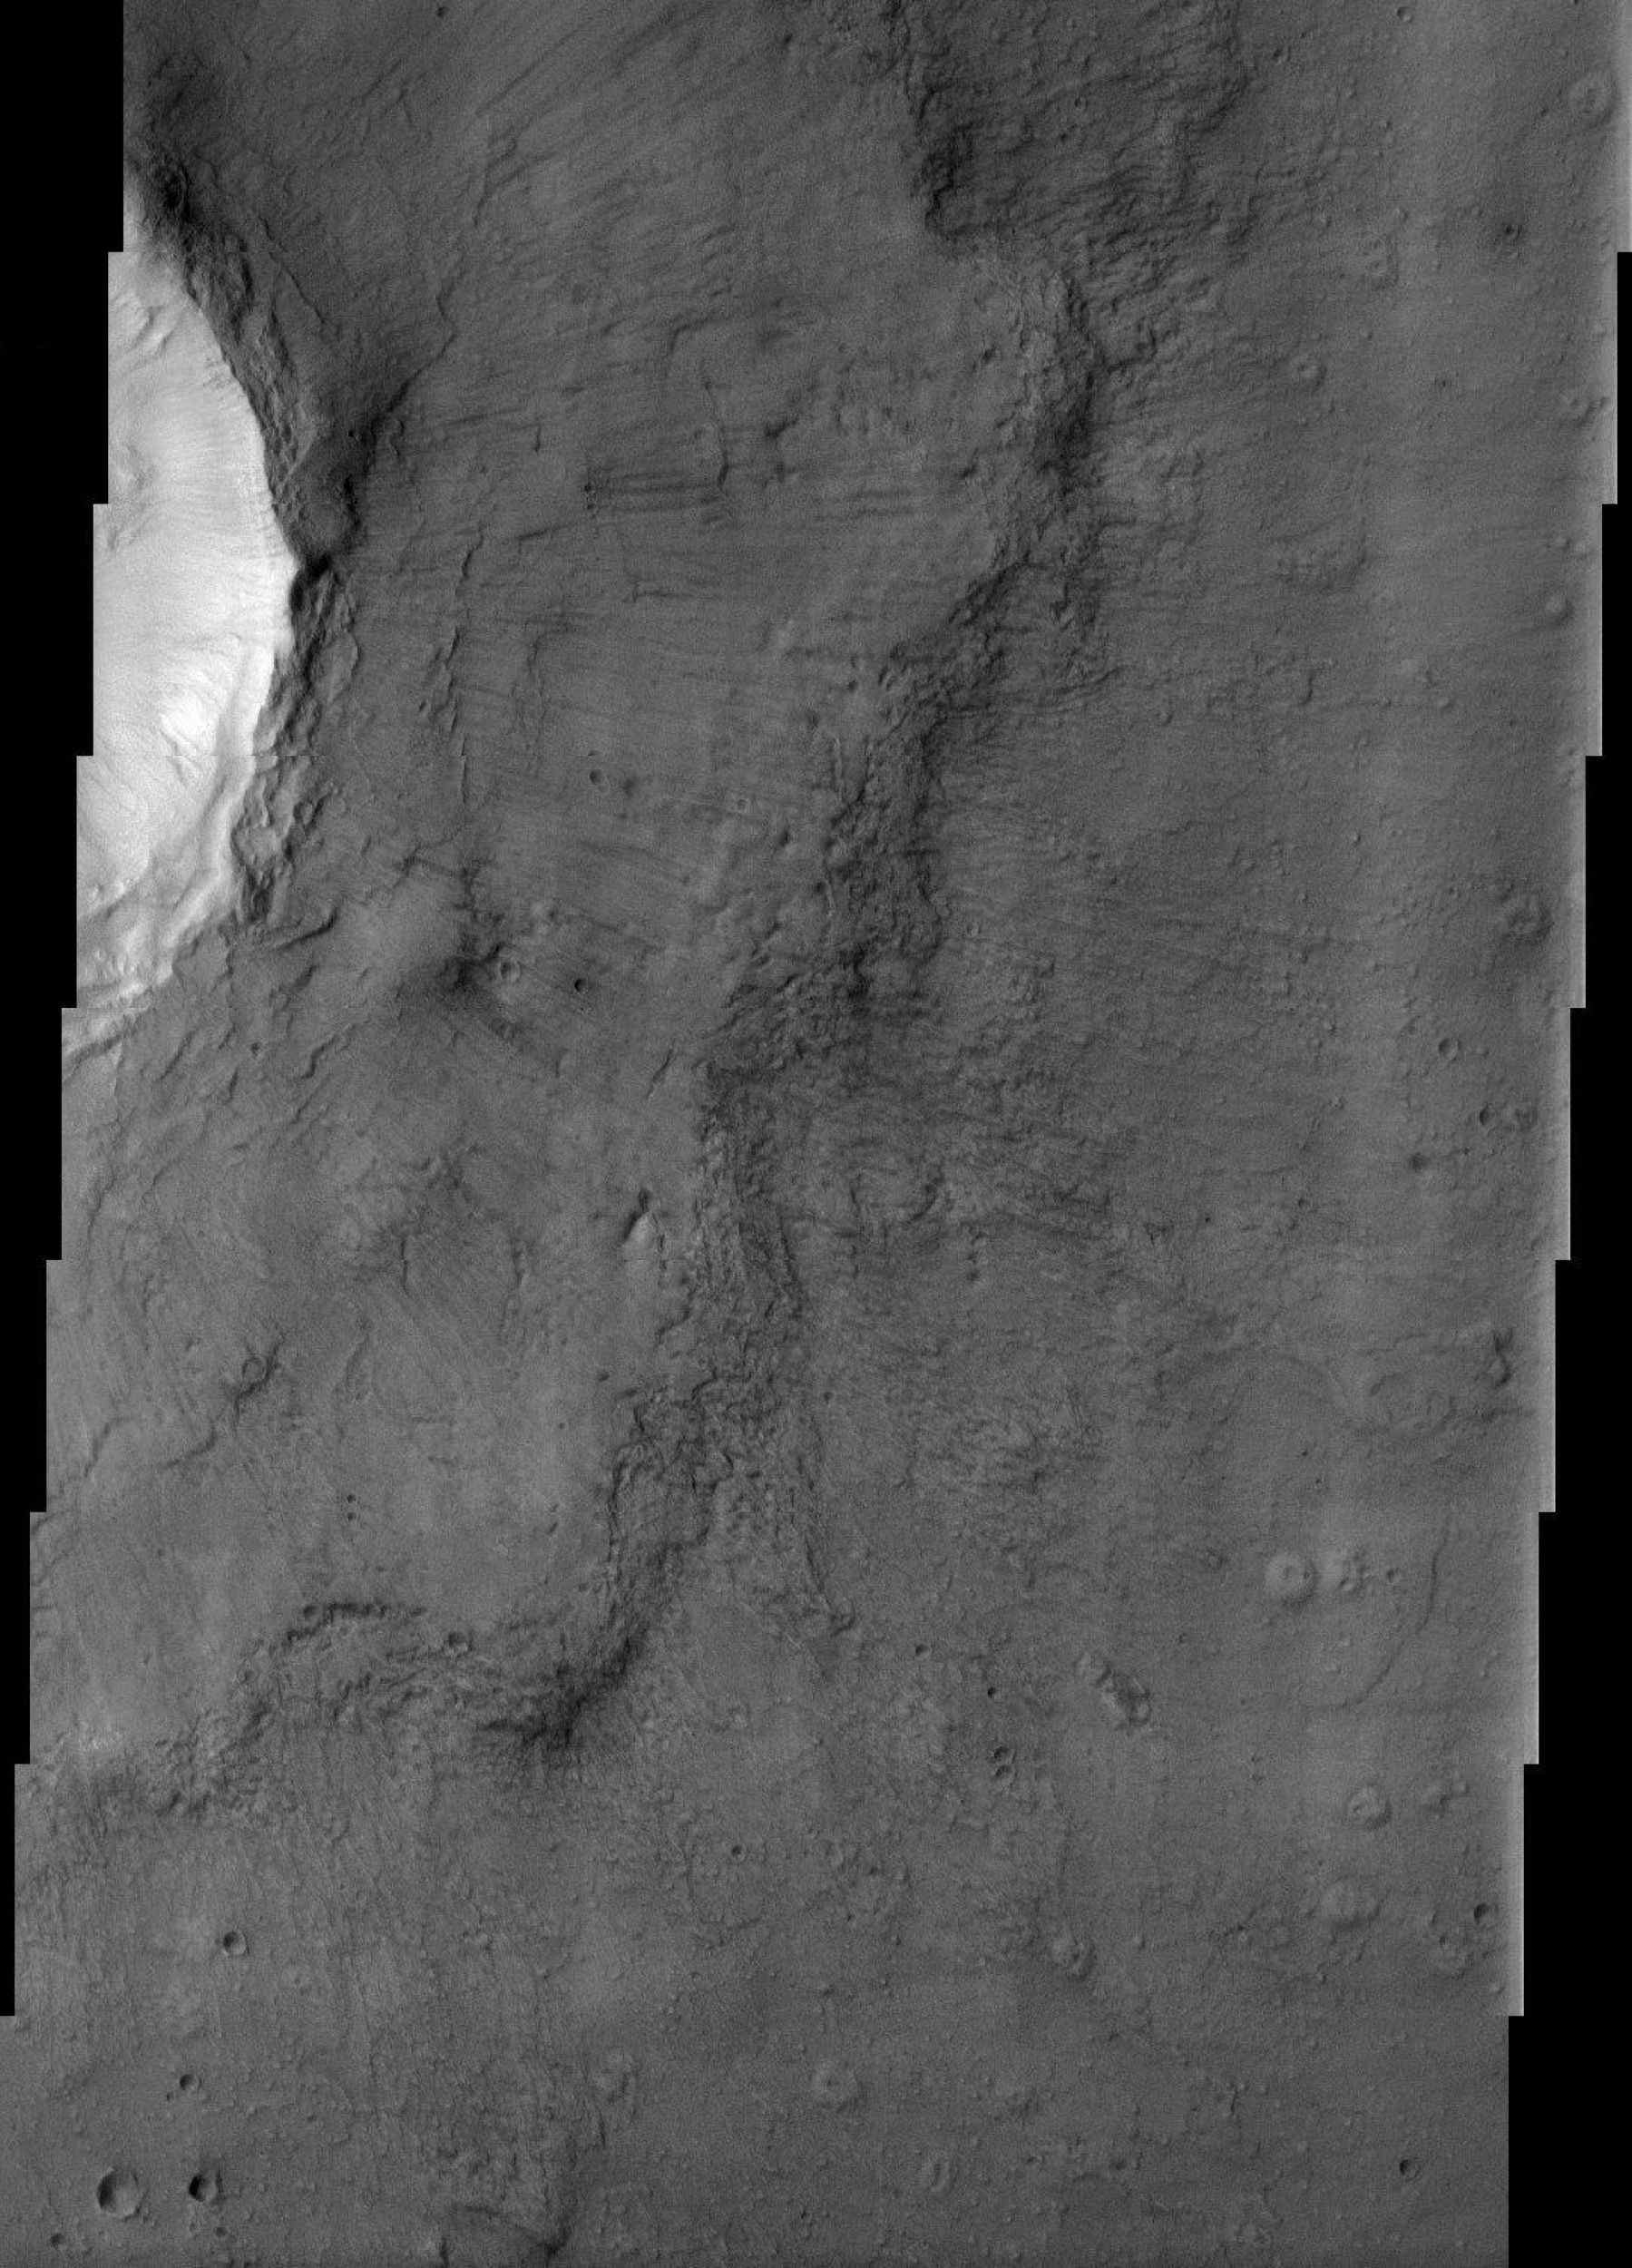 The ejecta blanket of the crater in this image from NASA's Mars Odyssey spacecraft does not resemble the blocky, discontinuous ejecta associated with most fresh craters on Mars.